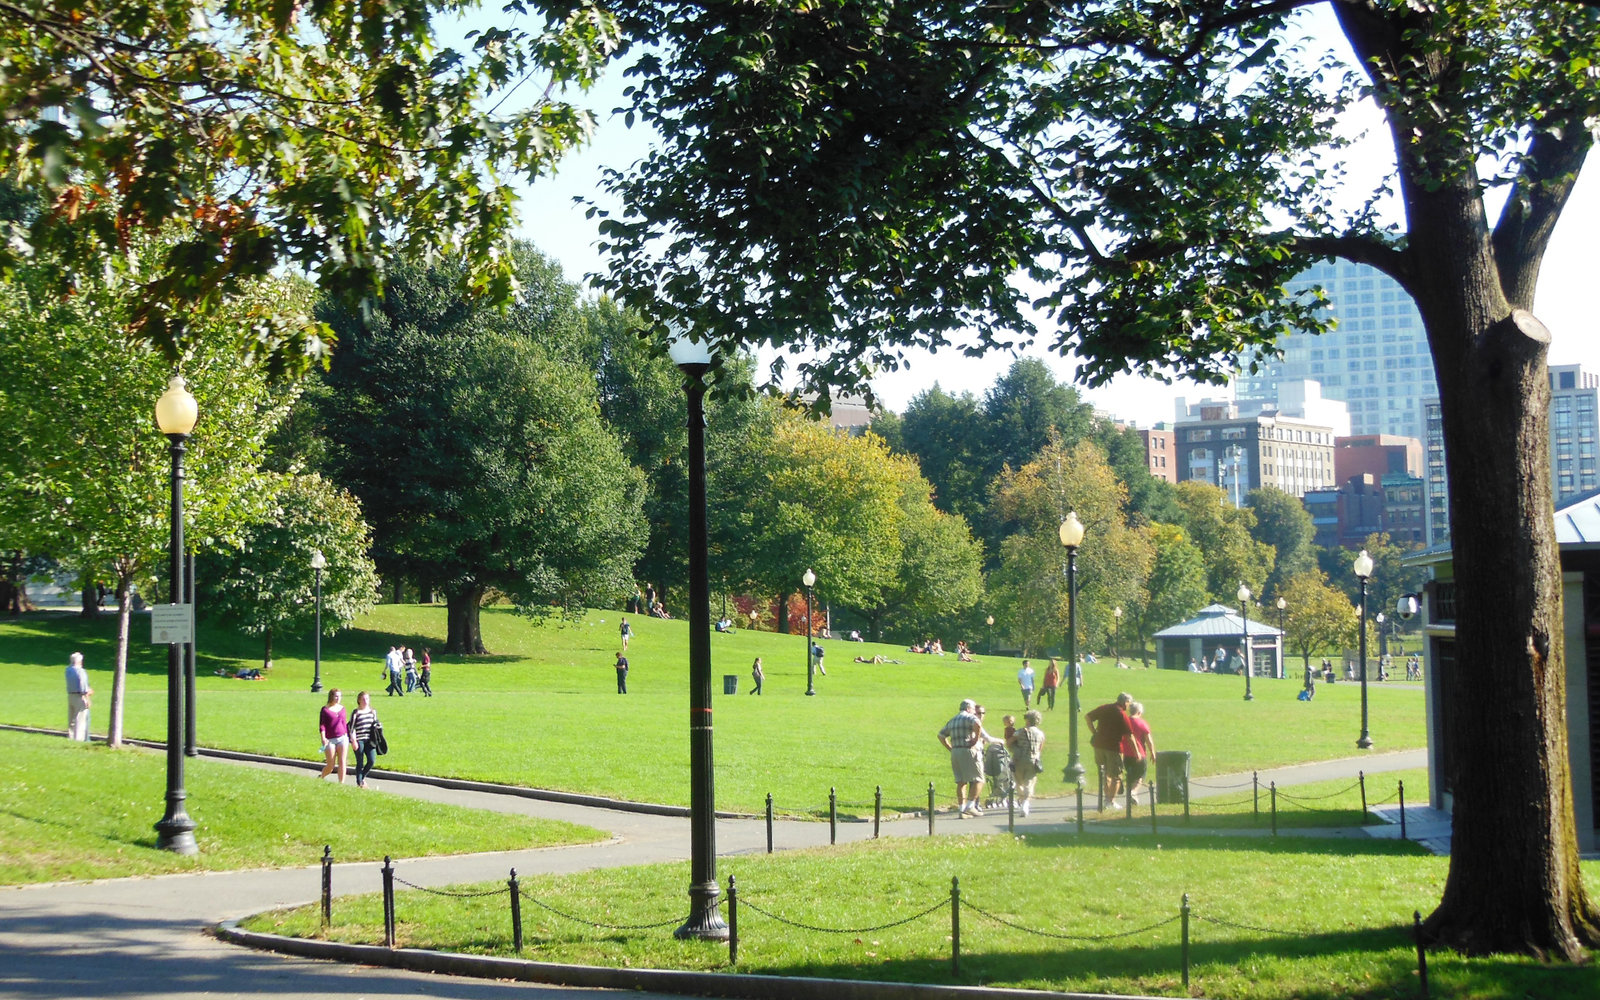 The Boston Common Park